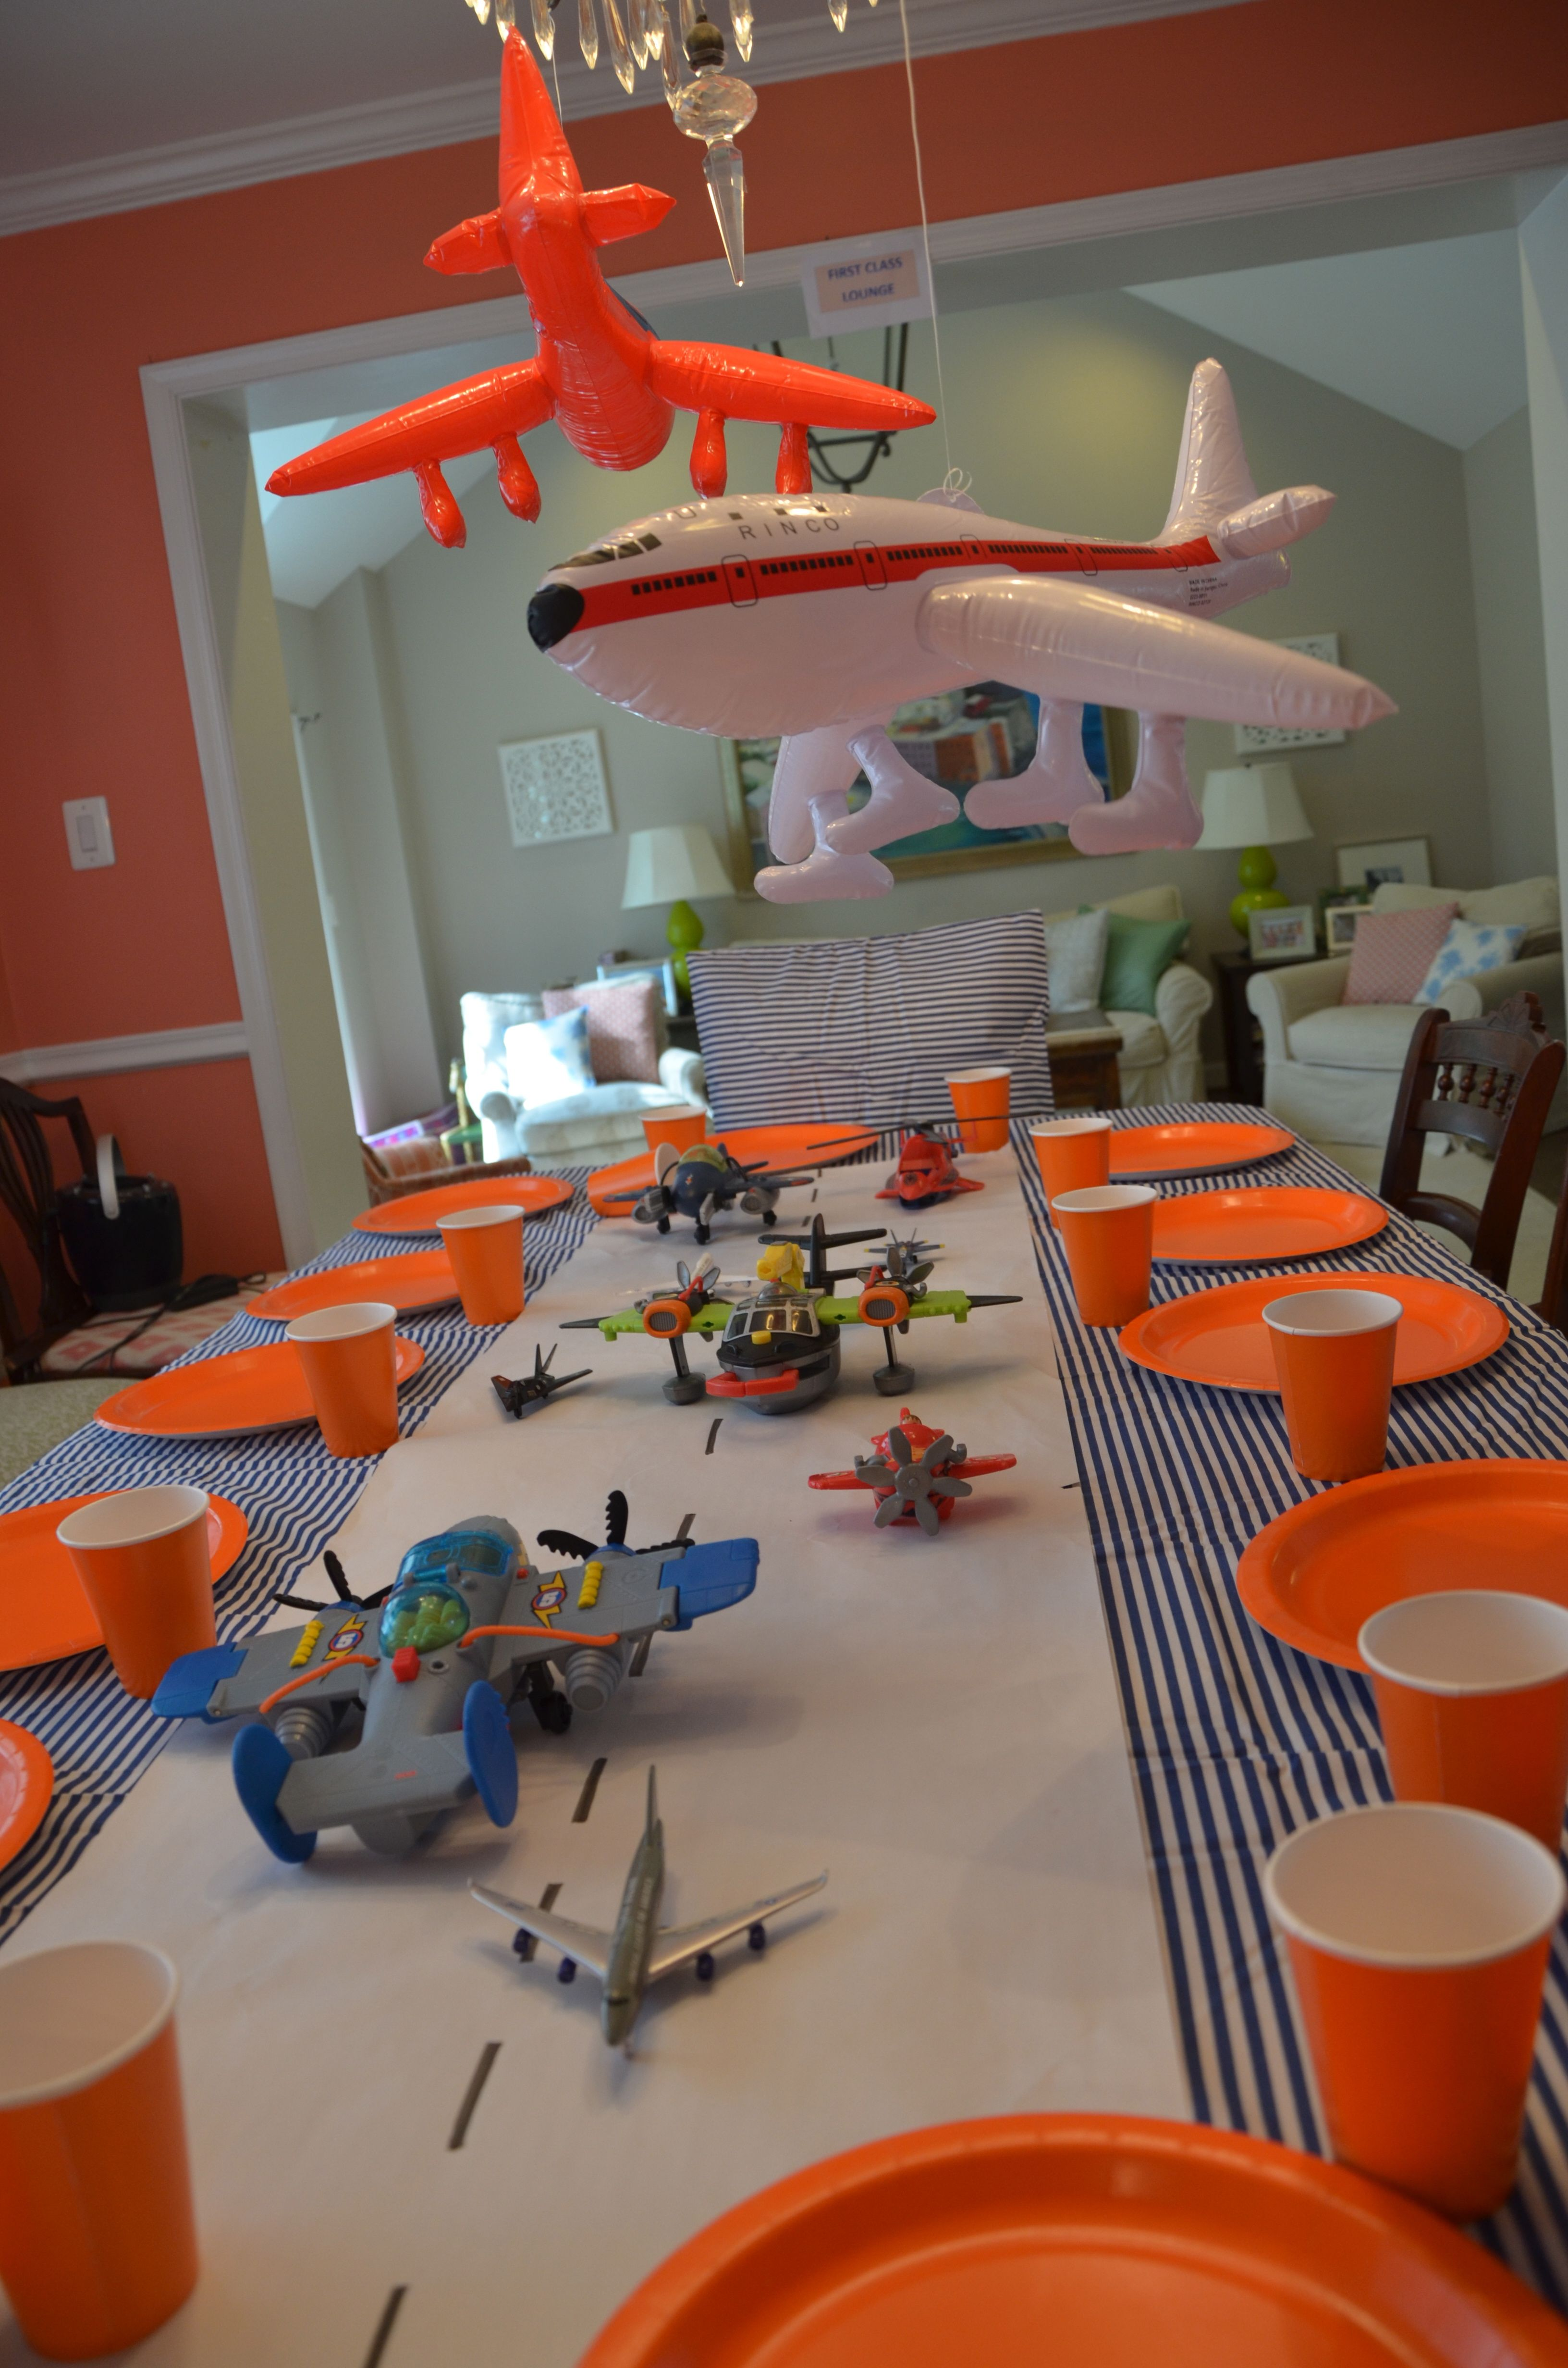 Airplane Birthday Paper runway and toy planes table cloth is a bed